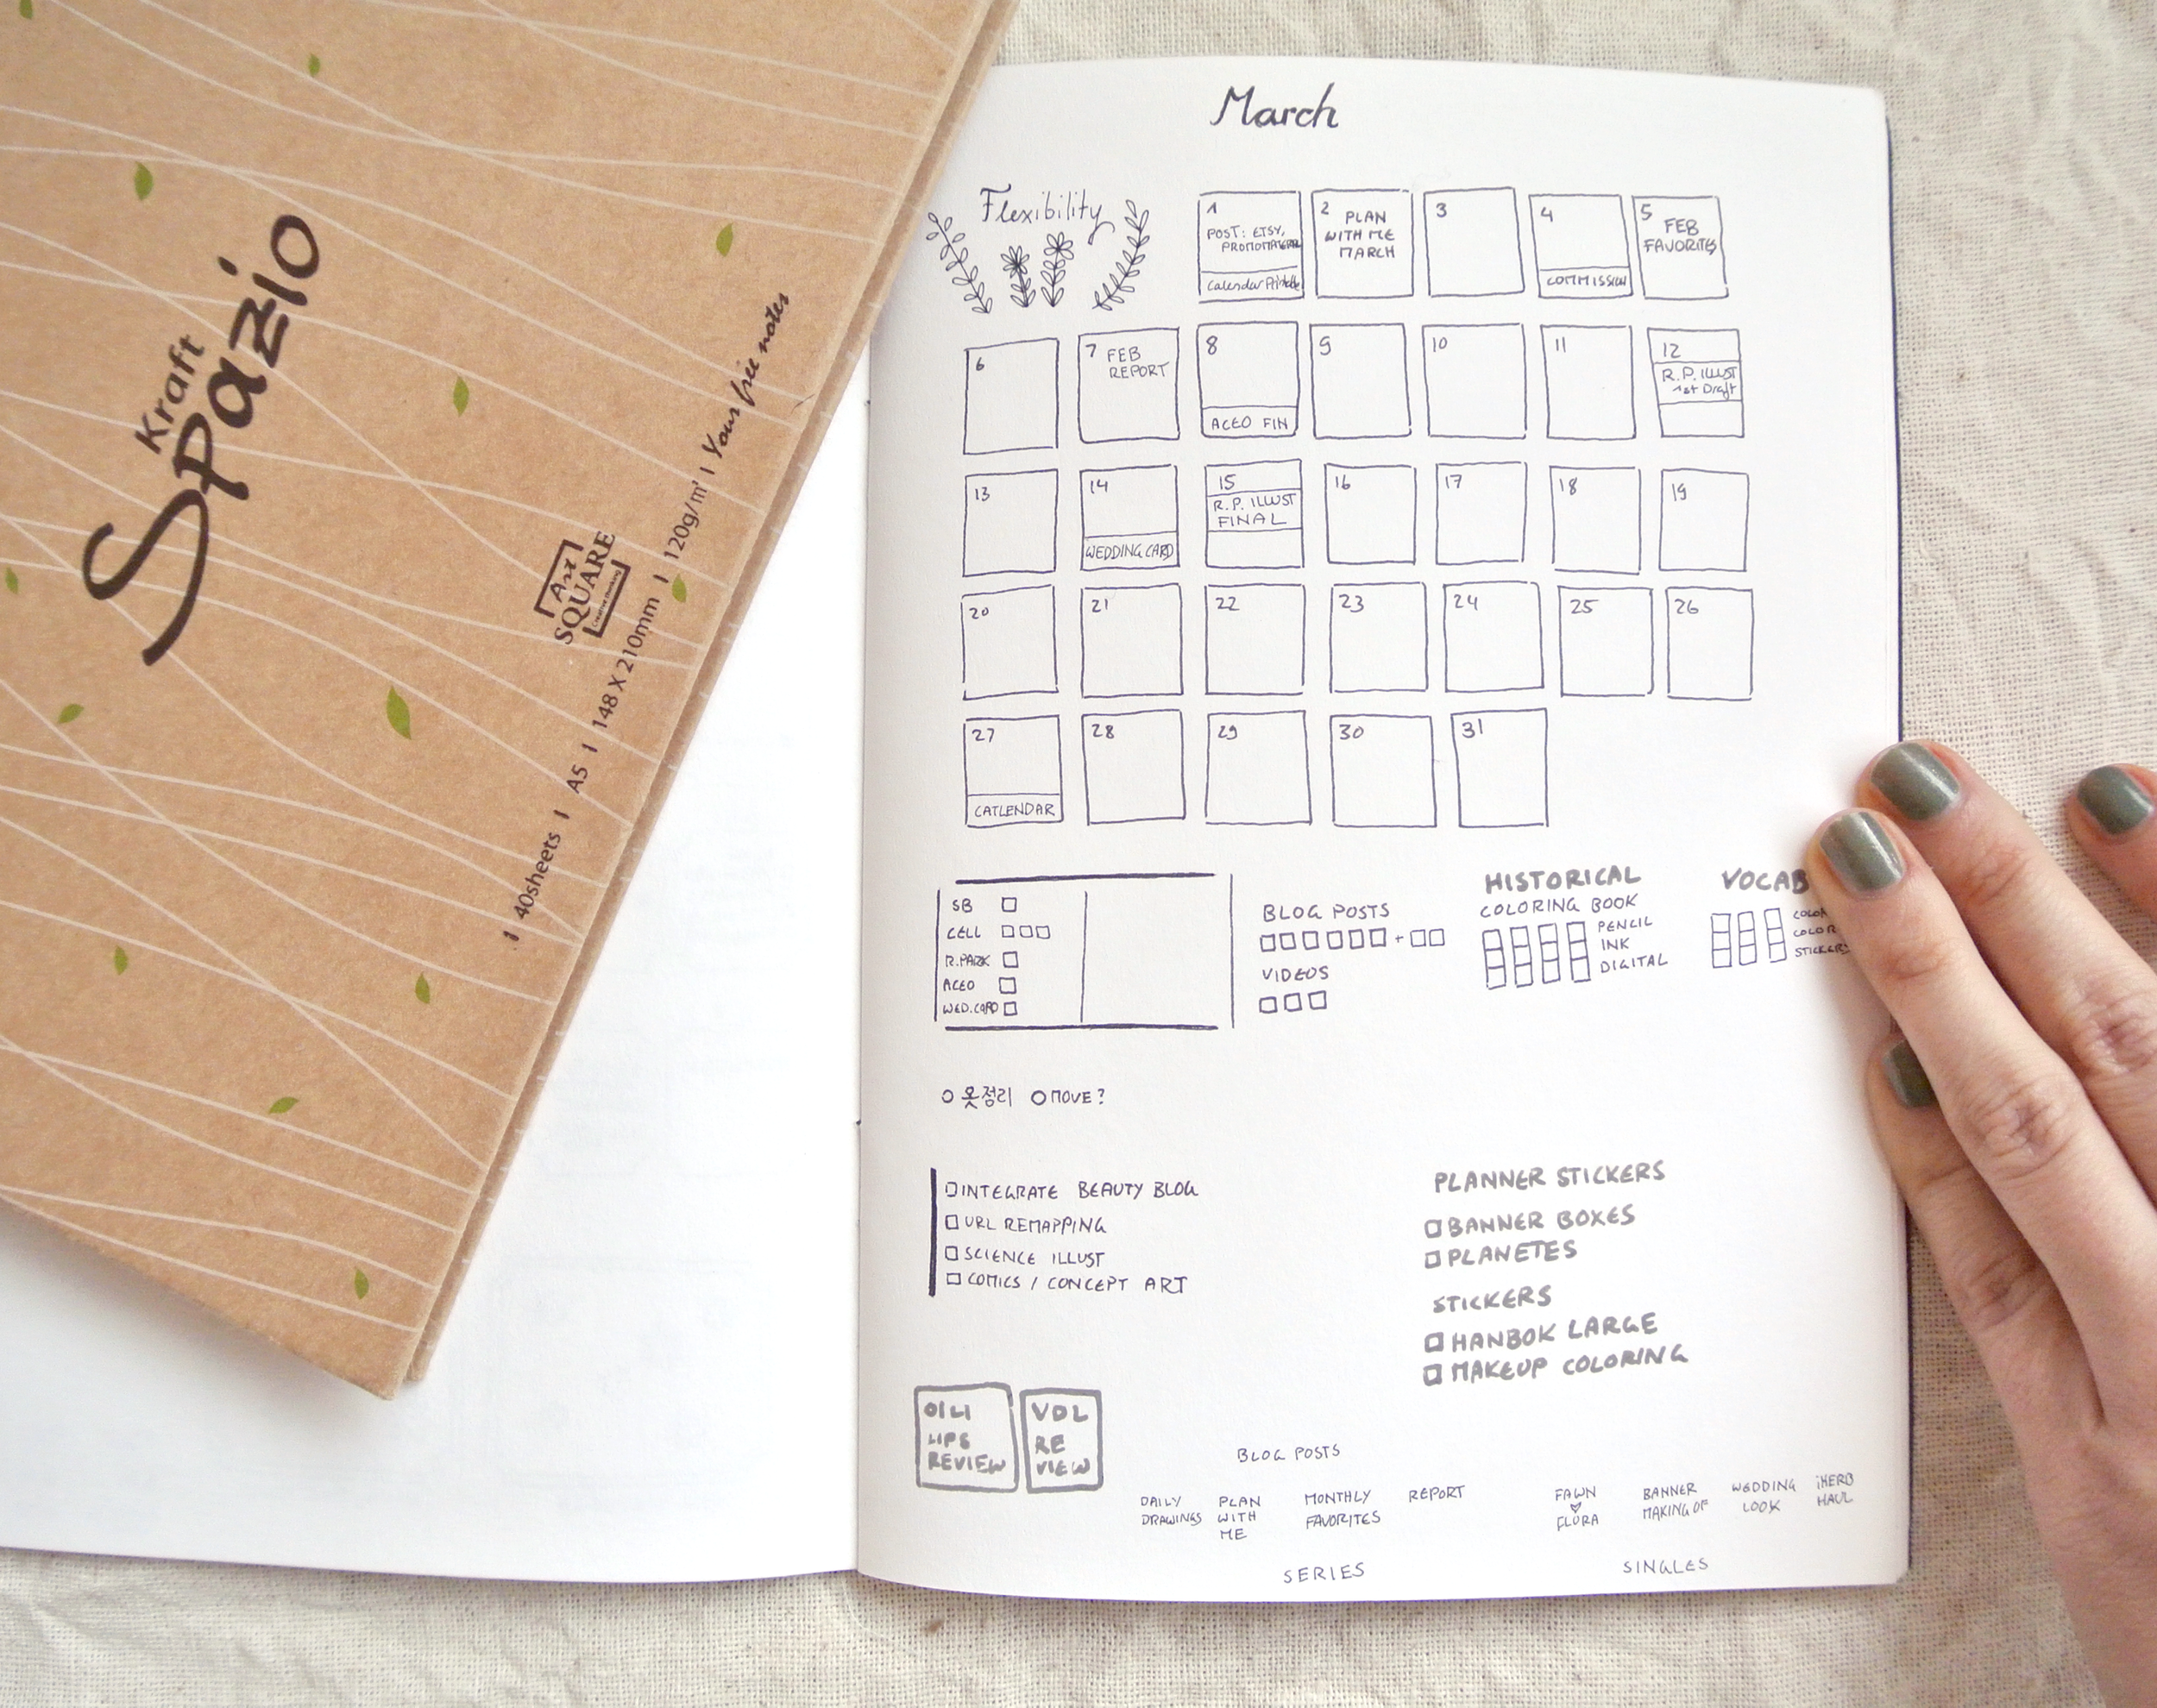 Monthly bullet journal setup for March - with the motto 'Flexibility' since the later half of the month will probably be a mess due to moving to a new place. Keeping it small, simple and minimalistic, focused on to-do lists instead of daily goals.